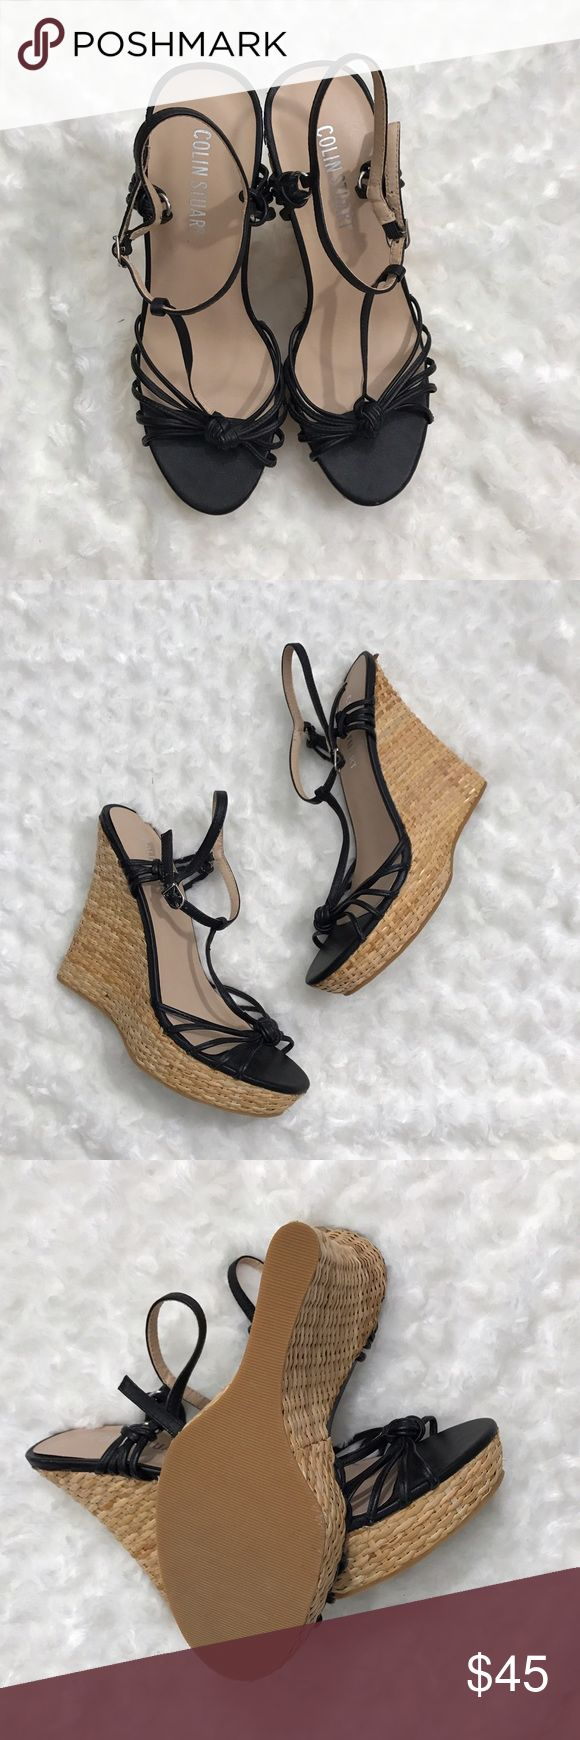 Colin Stuart Sandal Wedges Great Sandal Wedges for spring and summer! In excellent like new condition! Colin Stuart Shoes Wedges